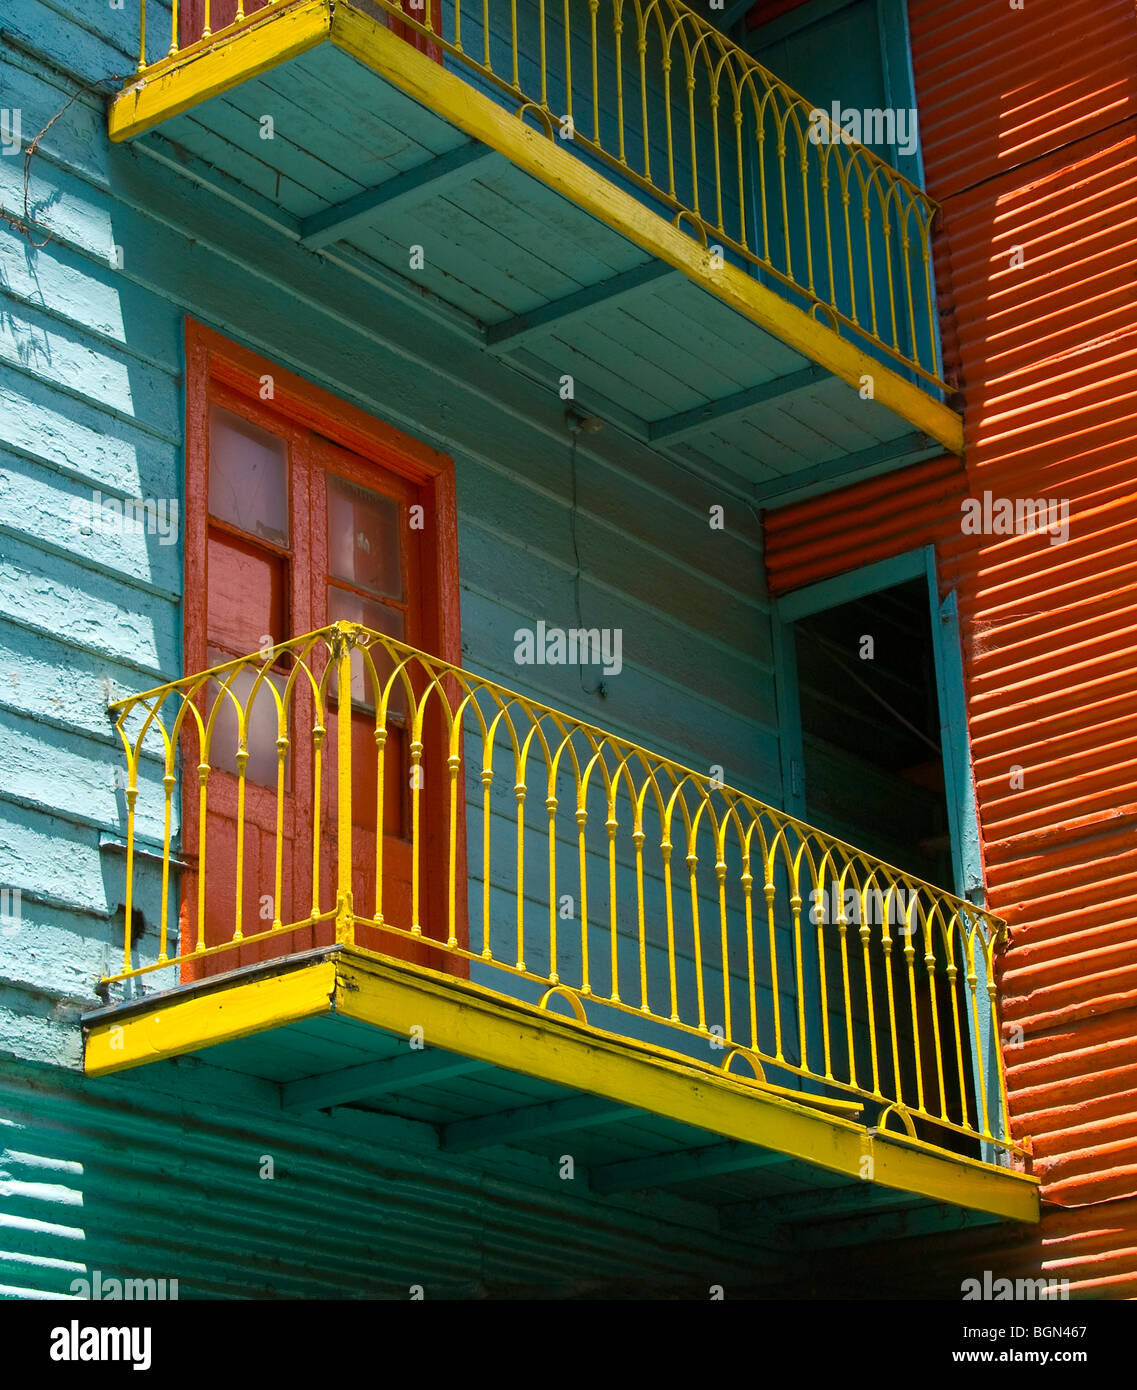 Colorful buildings lining the pedestrian street, La Caminto, in the neighborhood of La Boca, Buenos Aires, Argentina - Stock Image